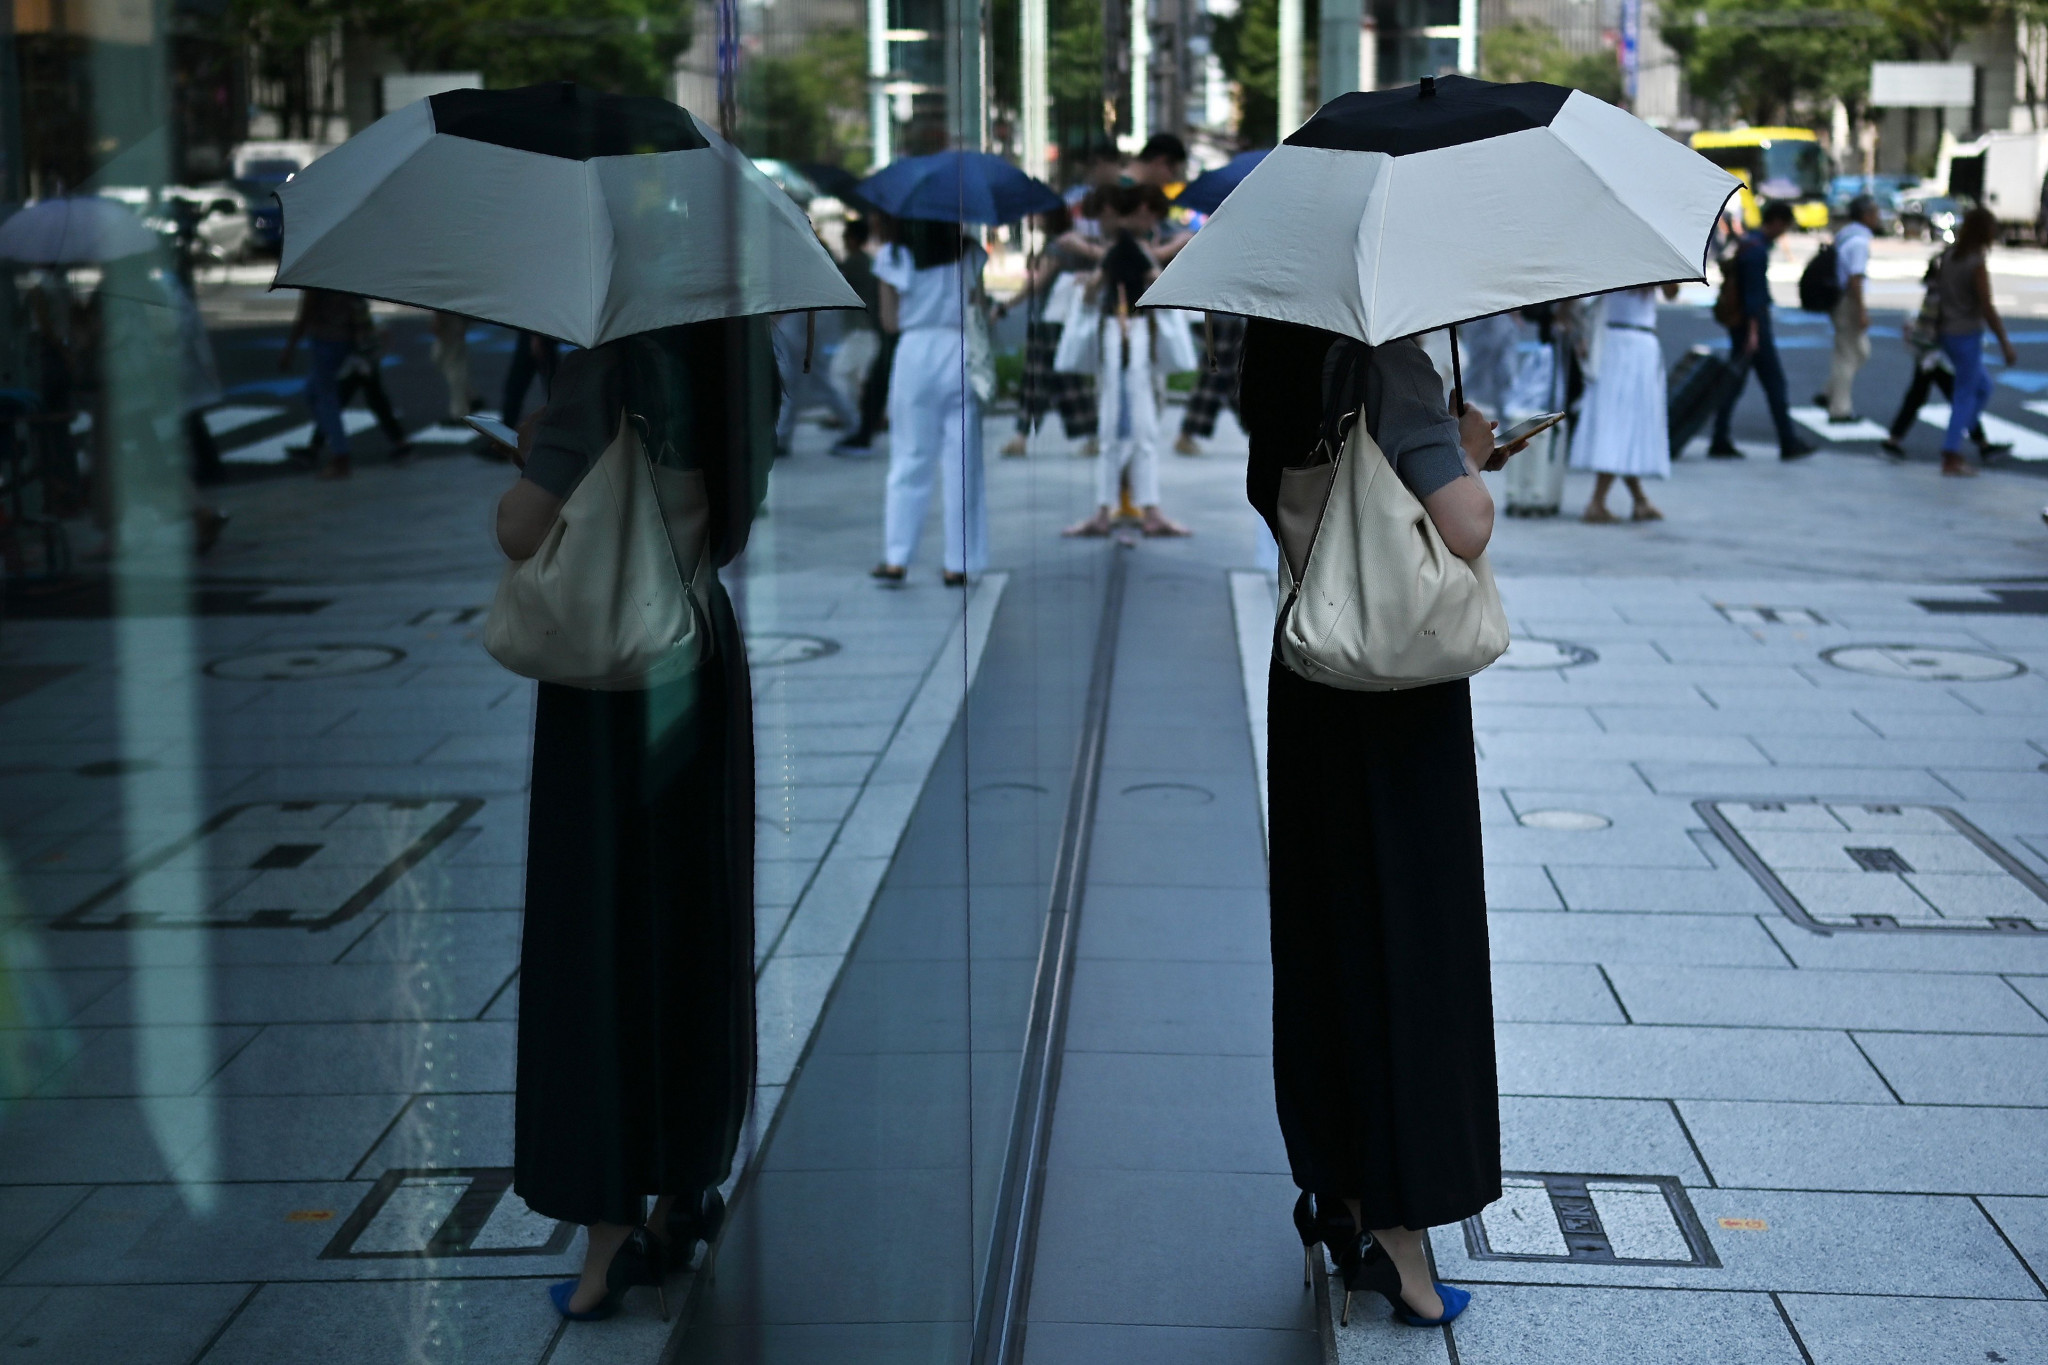 People in Japan have resorted to using umbrellas to shield themselves from soaring temperatures ©Getty Images